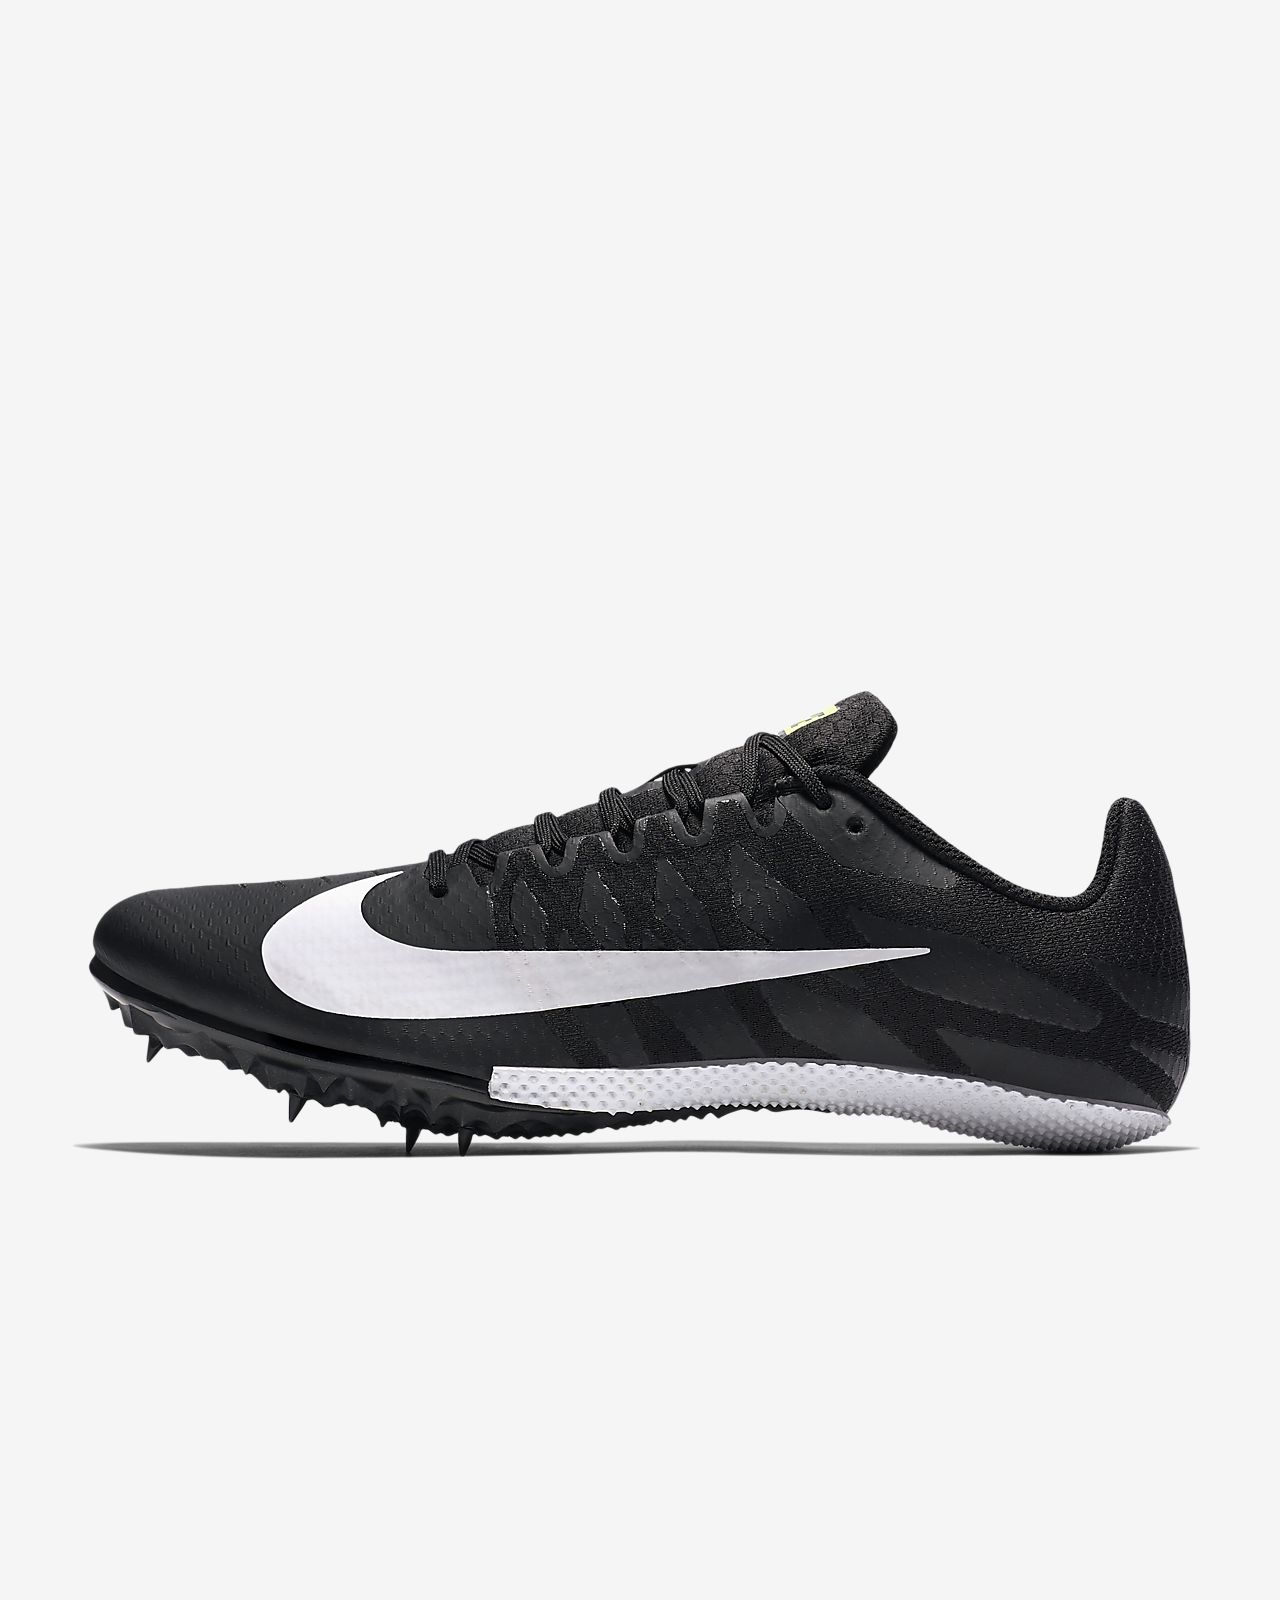 Nike Zoom Rival S 9 Unisex Track Spike